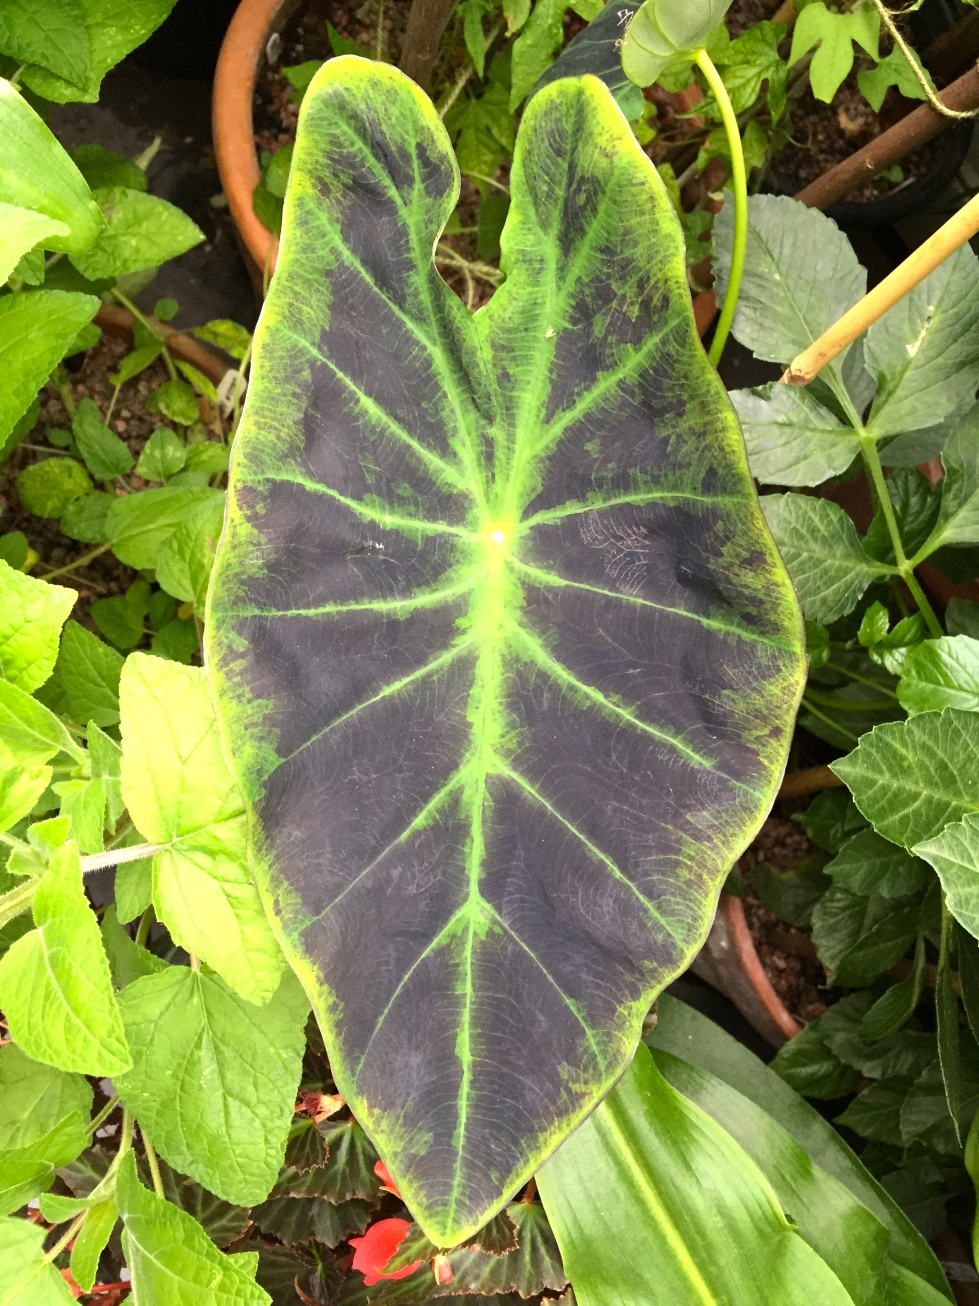 The leaves of Colocasia esculenta 'Illustris' can reach 3ft in length